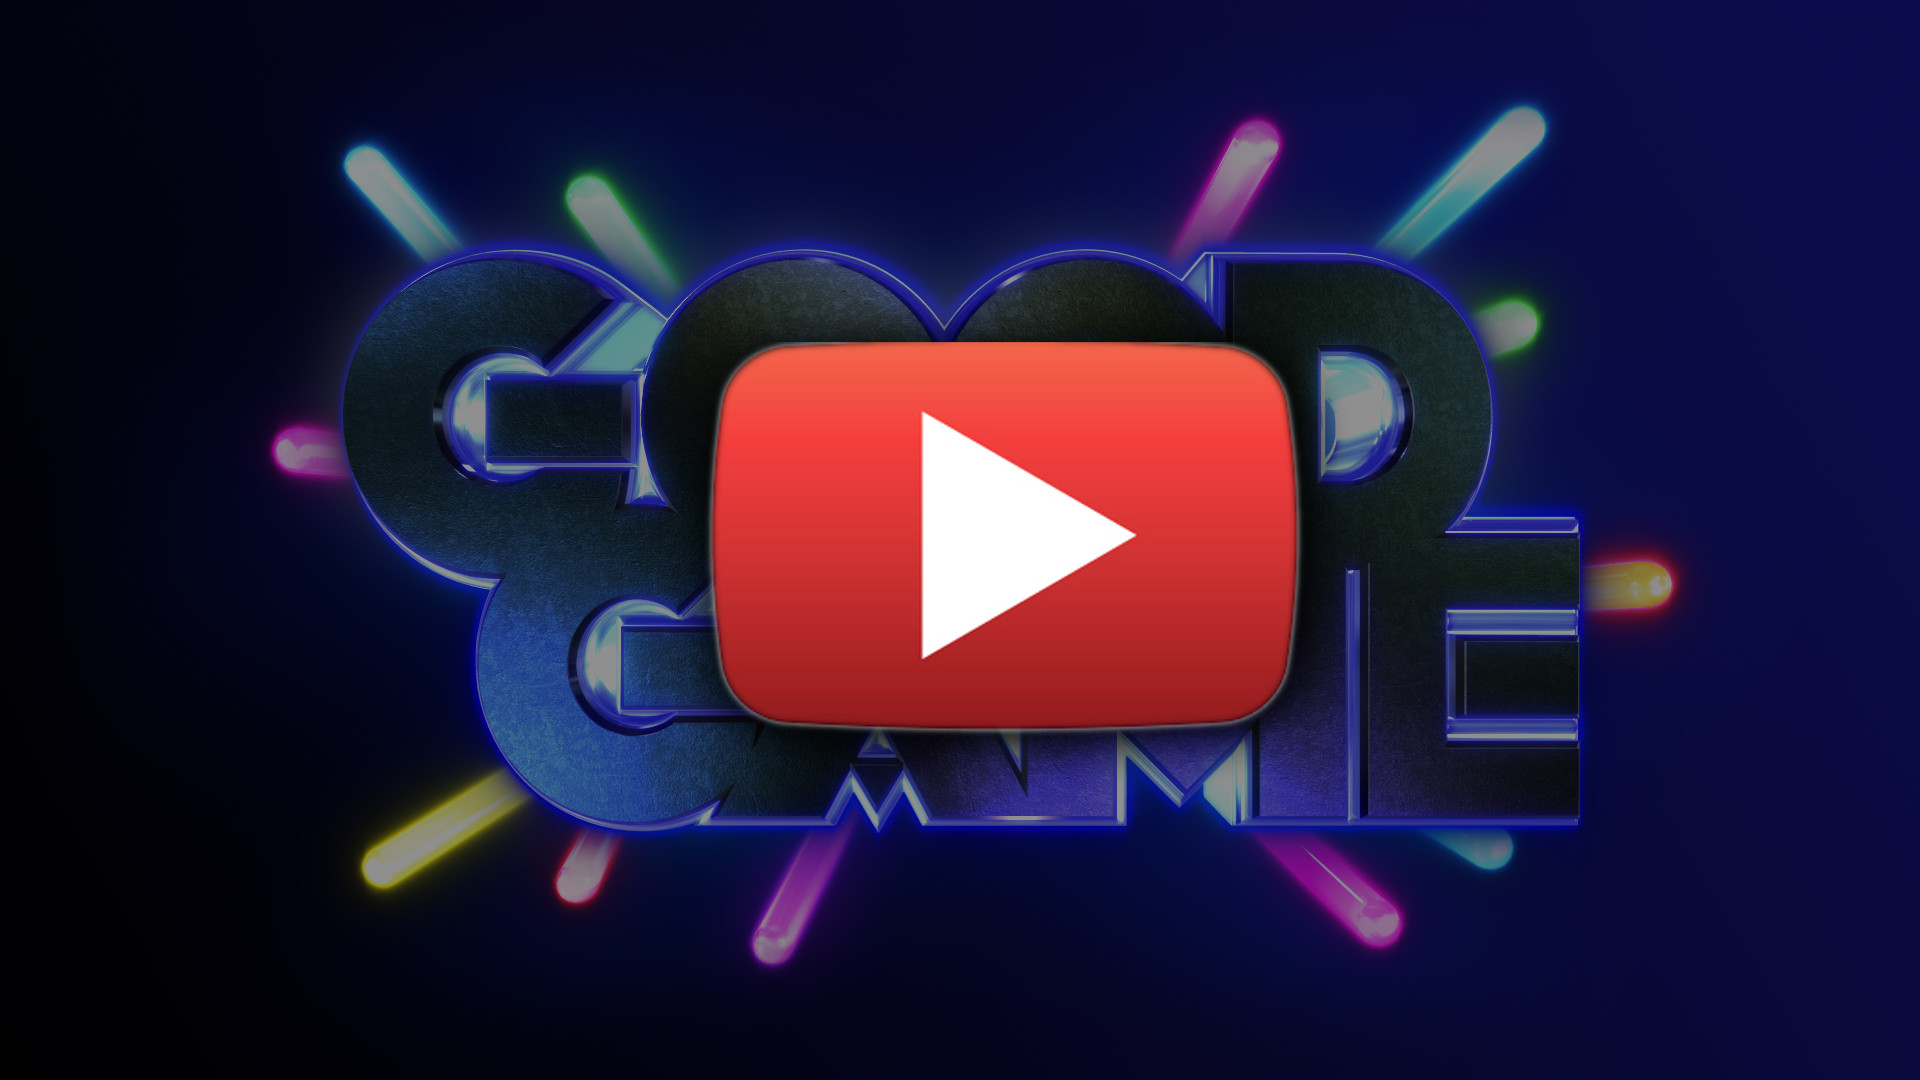 61 Gaming Wallpaper For Youtube Channel